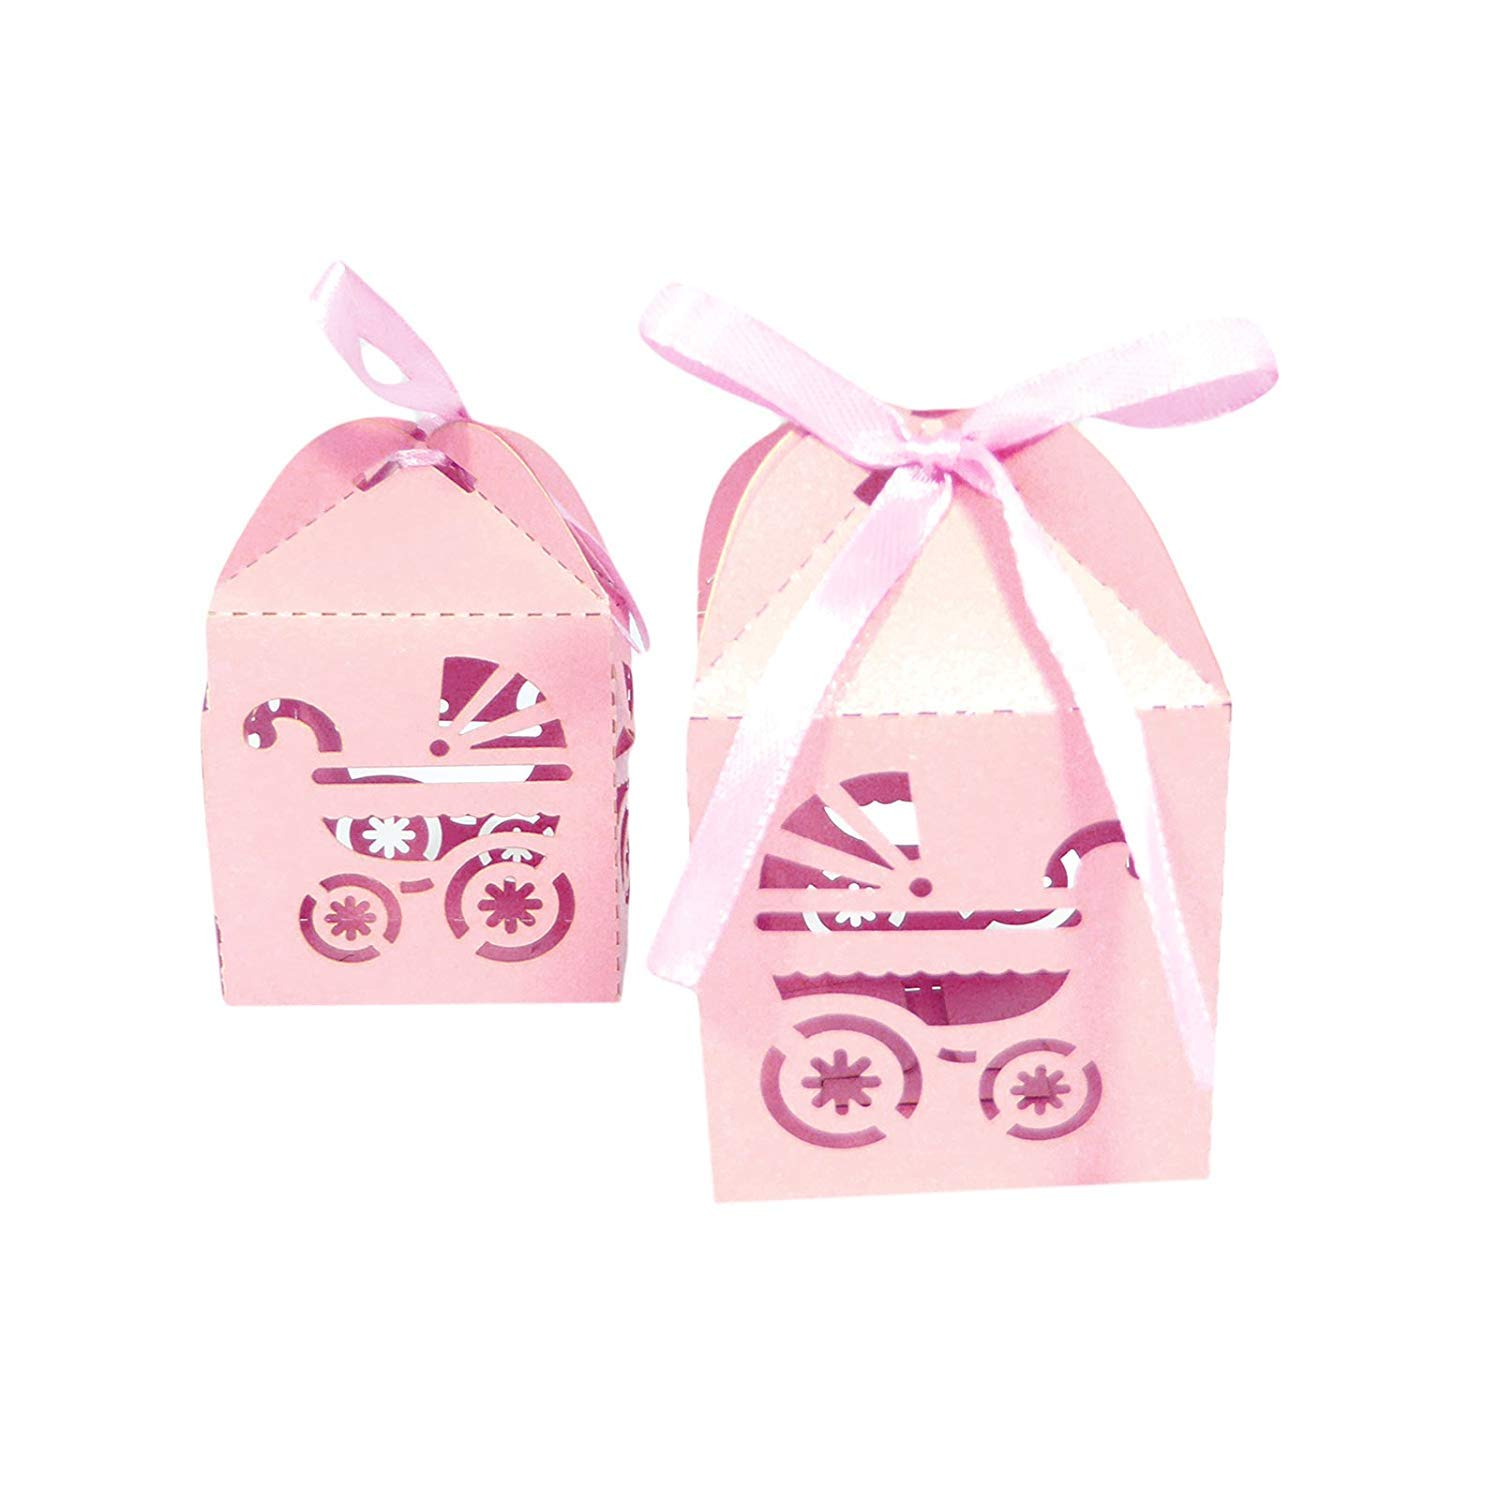 Wedding Baby Shower Gift Boxes Favors Carriage Laser Cut Candy Decoration Multi Pack Decorative